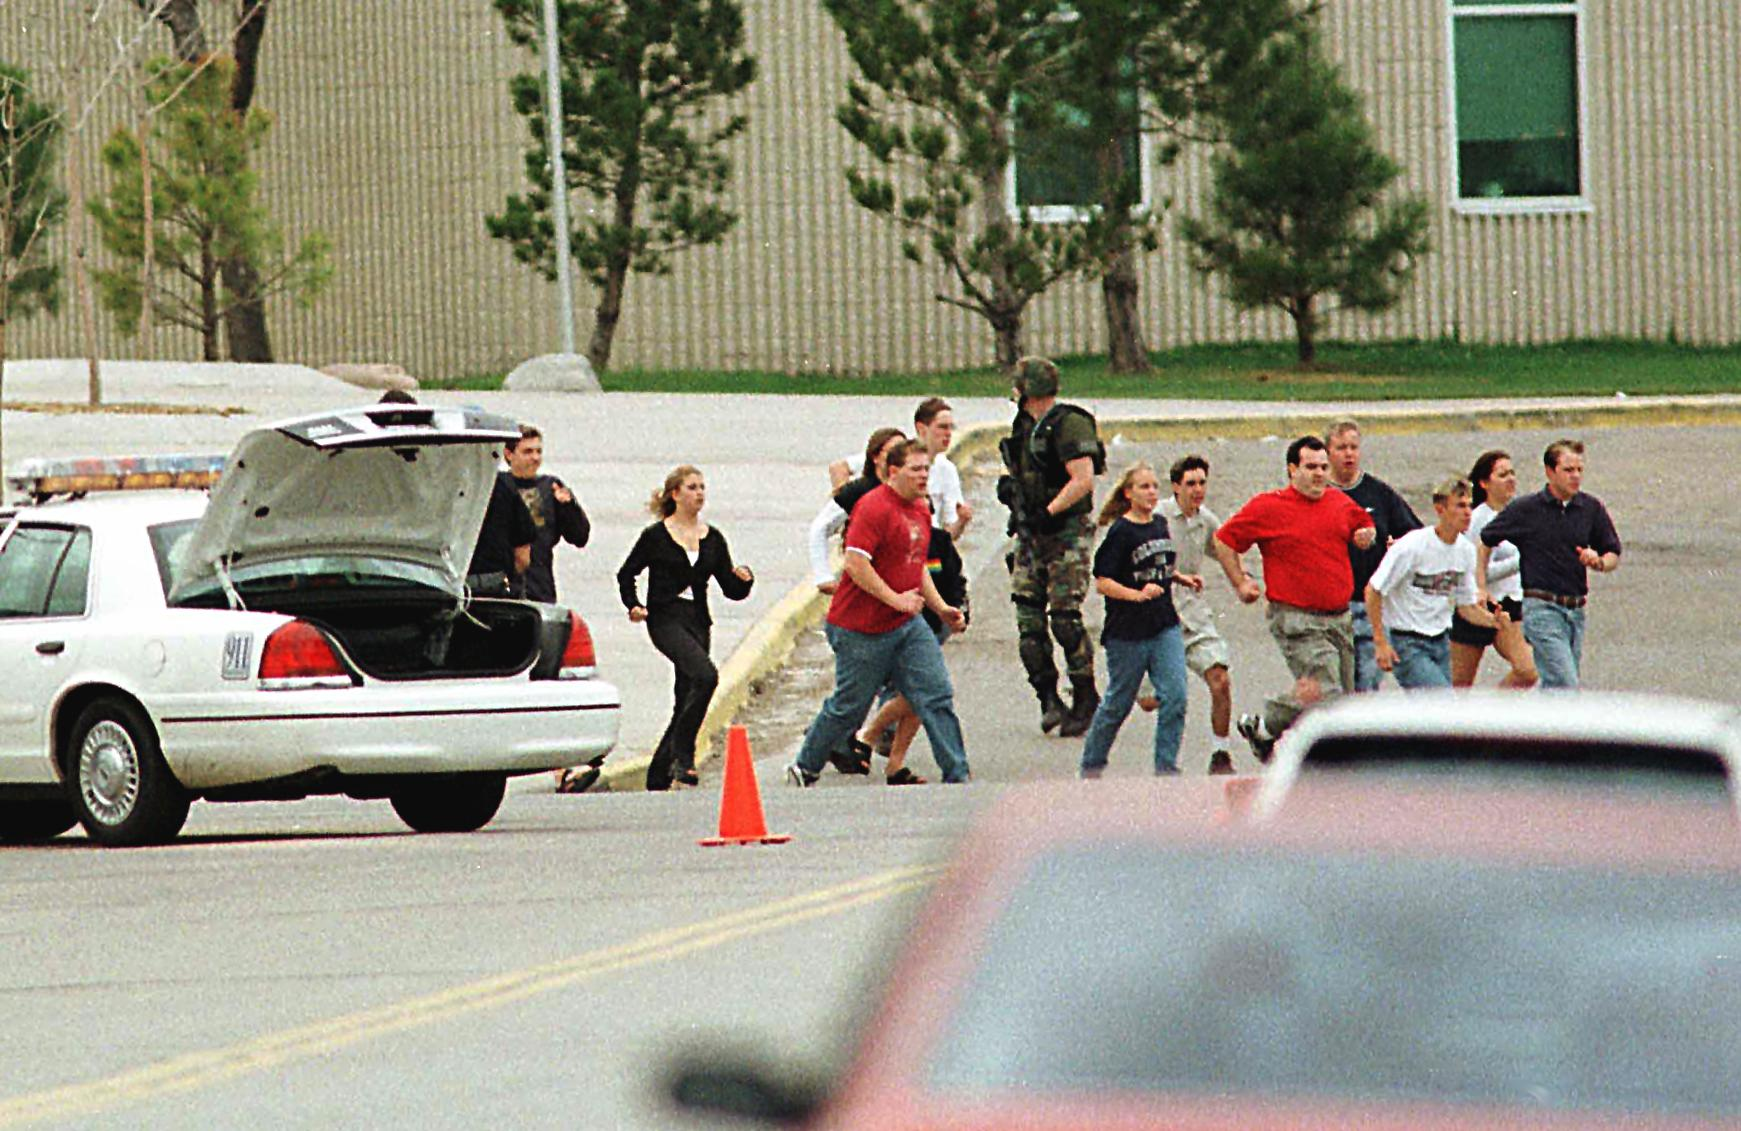 an analysis of the columbine high school shooting in the united states Since the deadly events at columbine high school in students are still dying in mass shootings at u the deadliest school shooting in united states history.